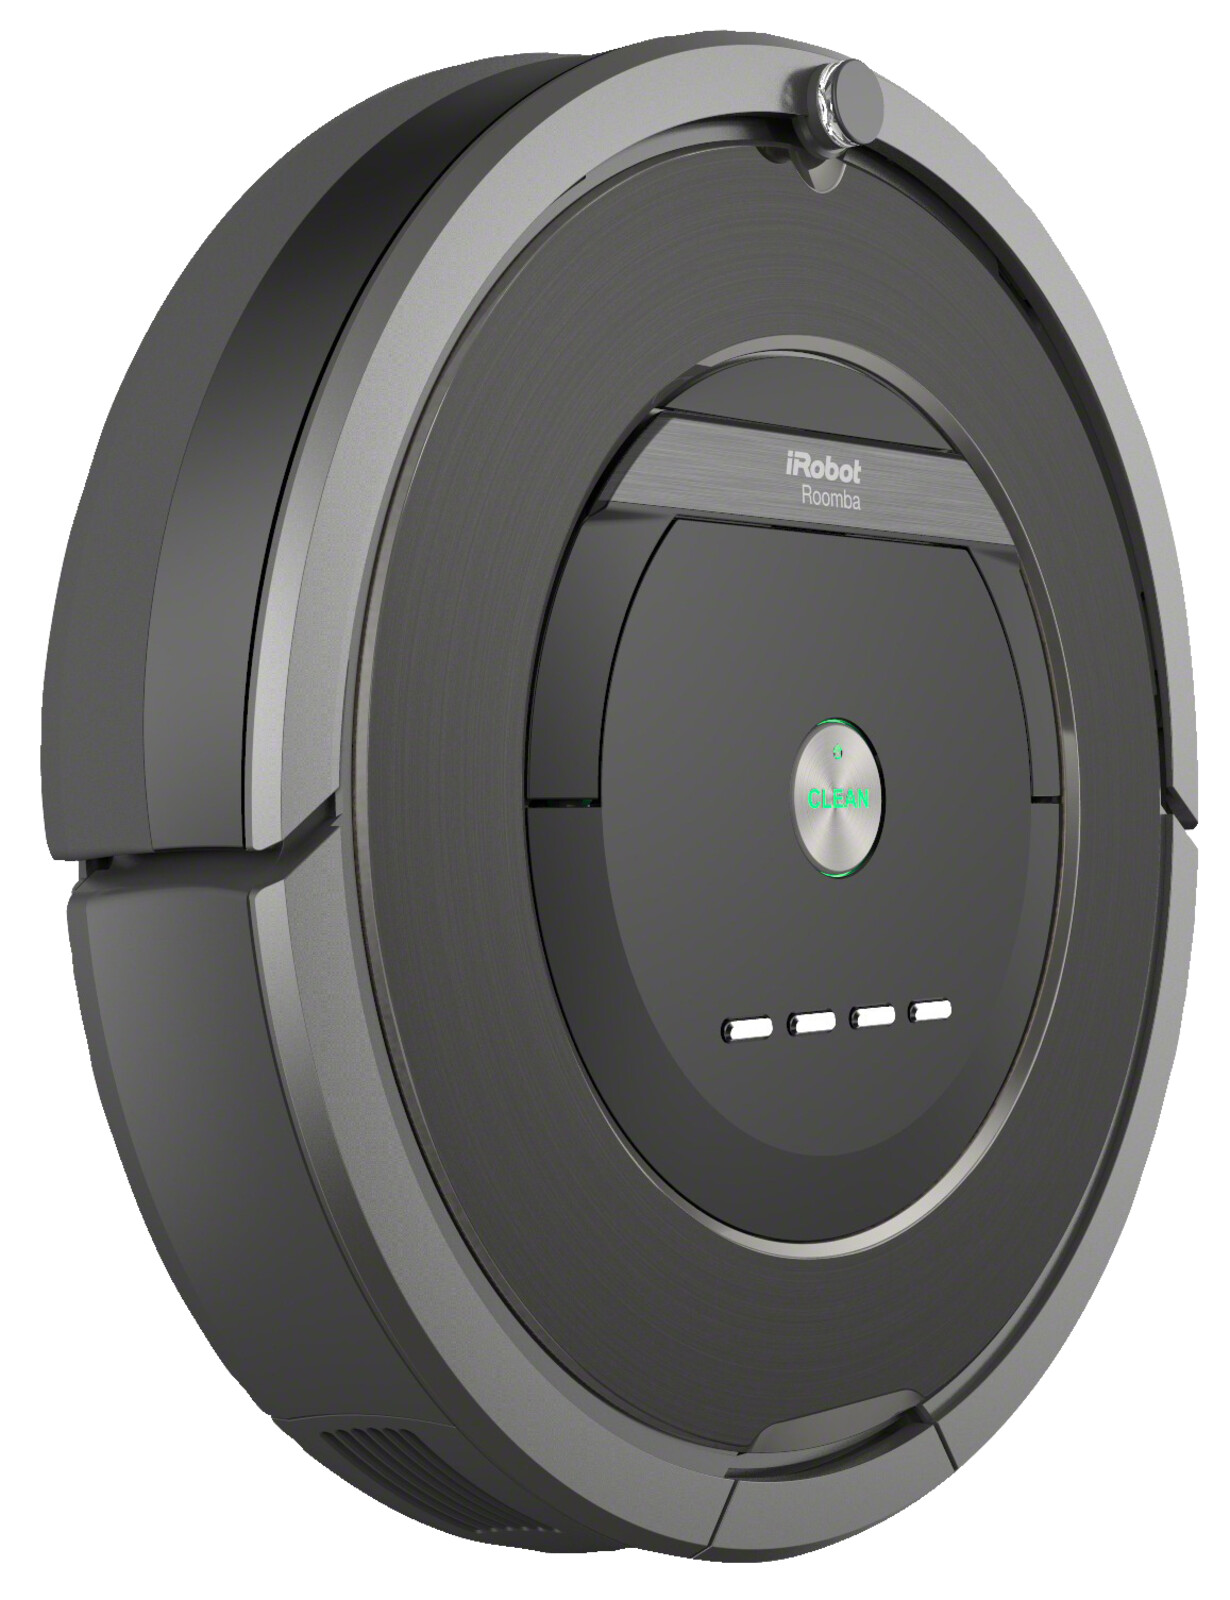 irobot 880 roomba staubsauger roboter schwarz ebay. Black Bedroom Furniture Sets. Home Design Ideas